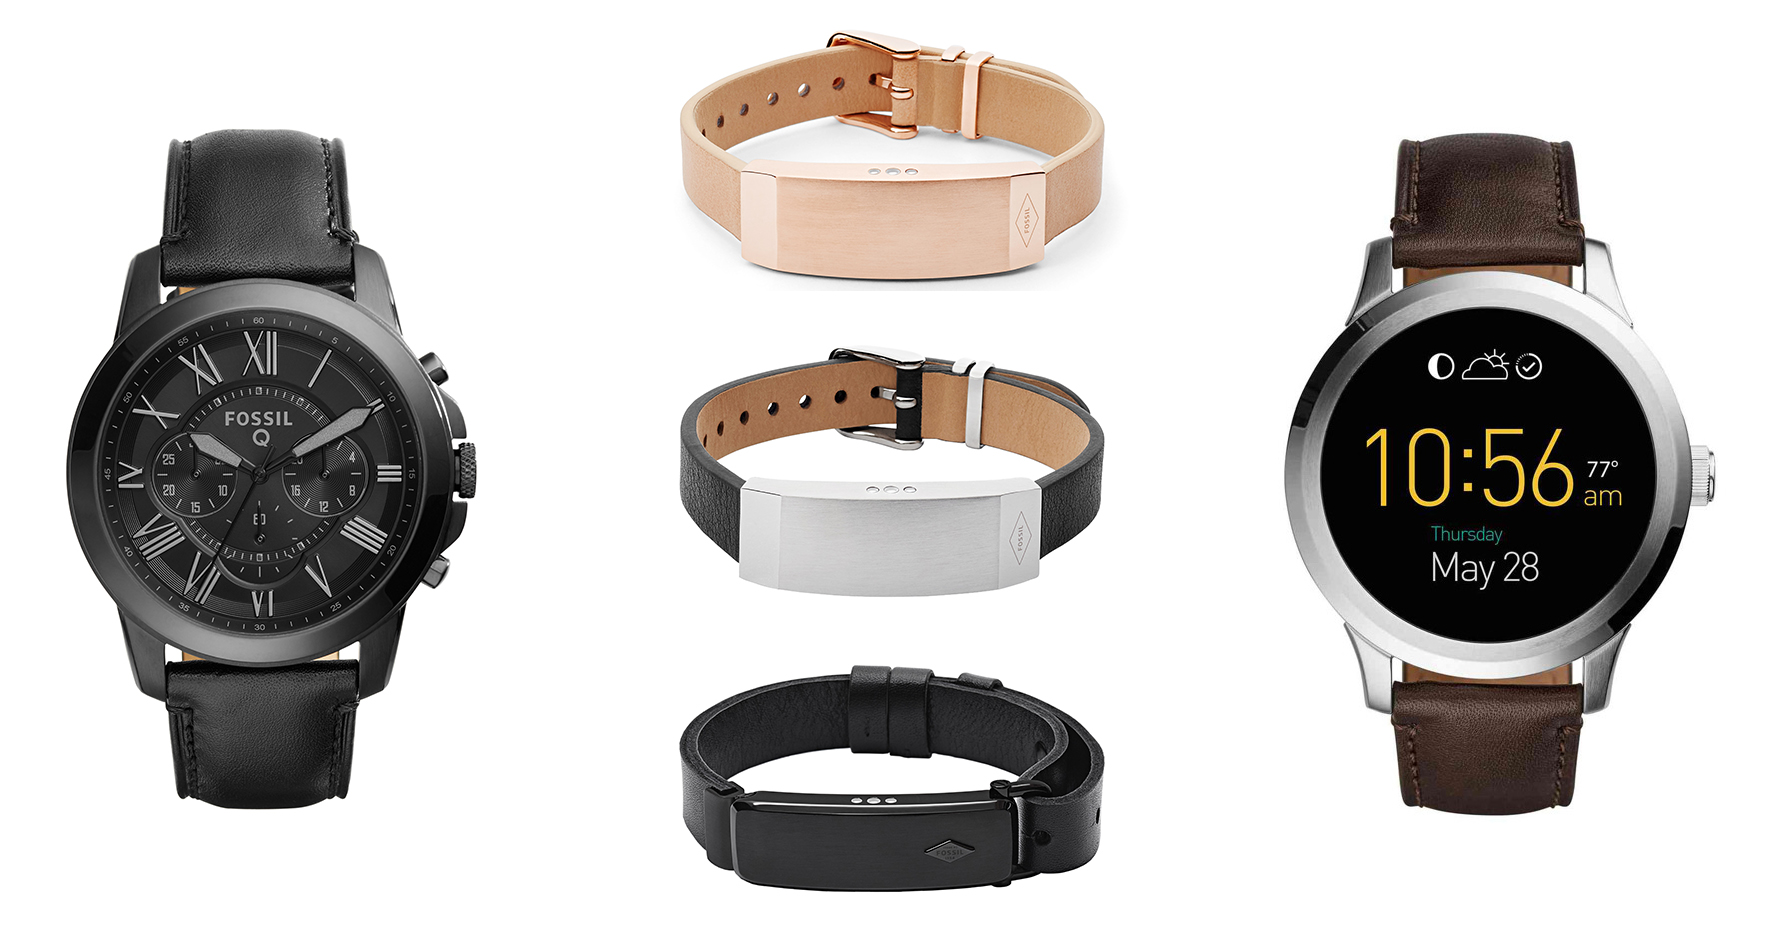 Fossil's Entry Into Smartwatches